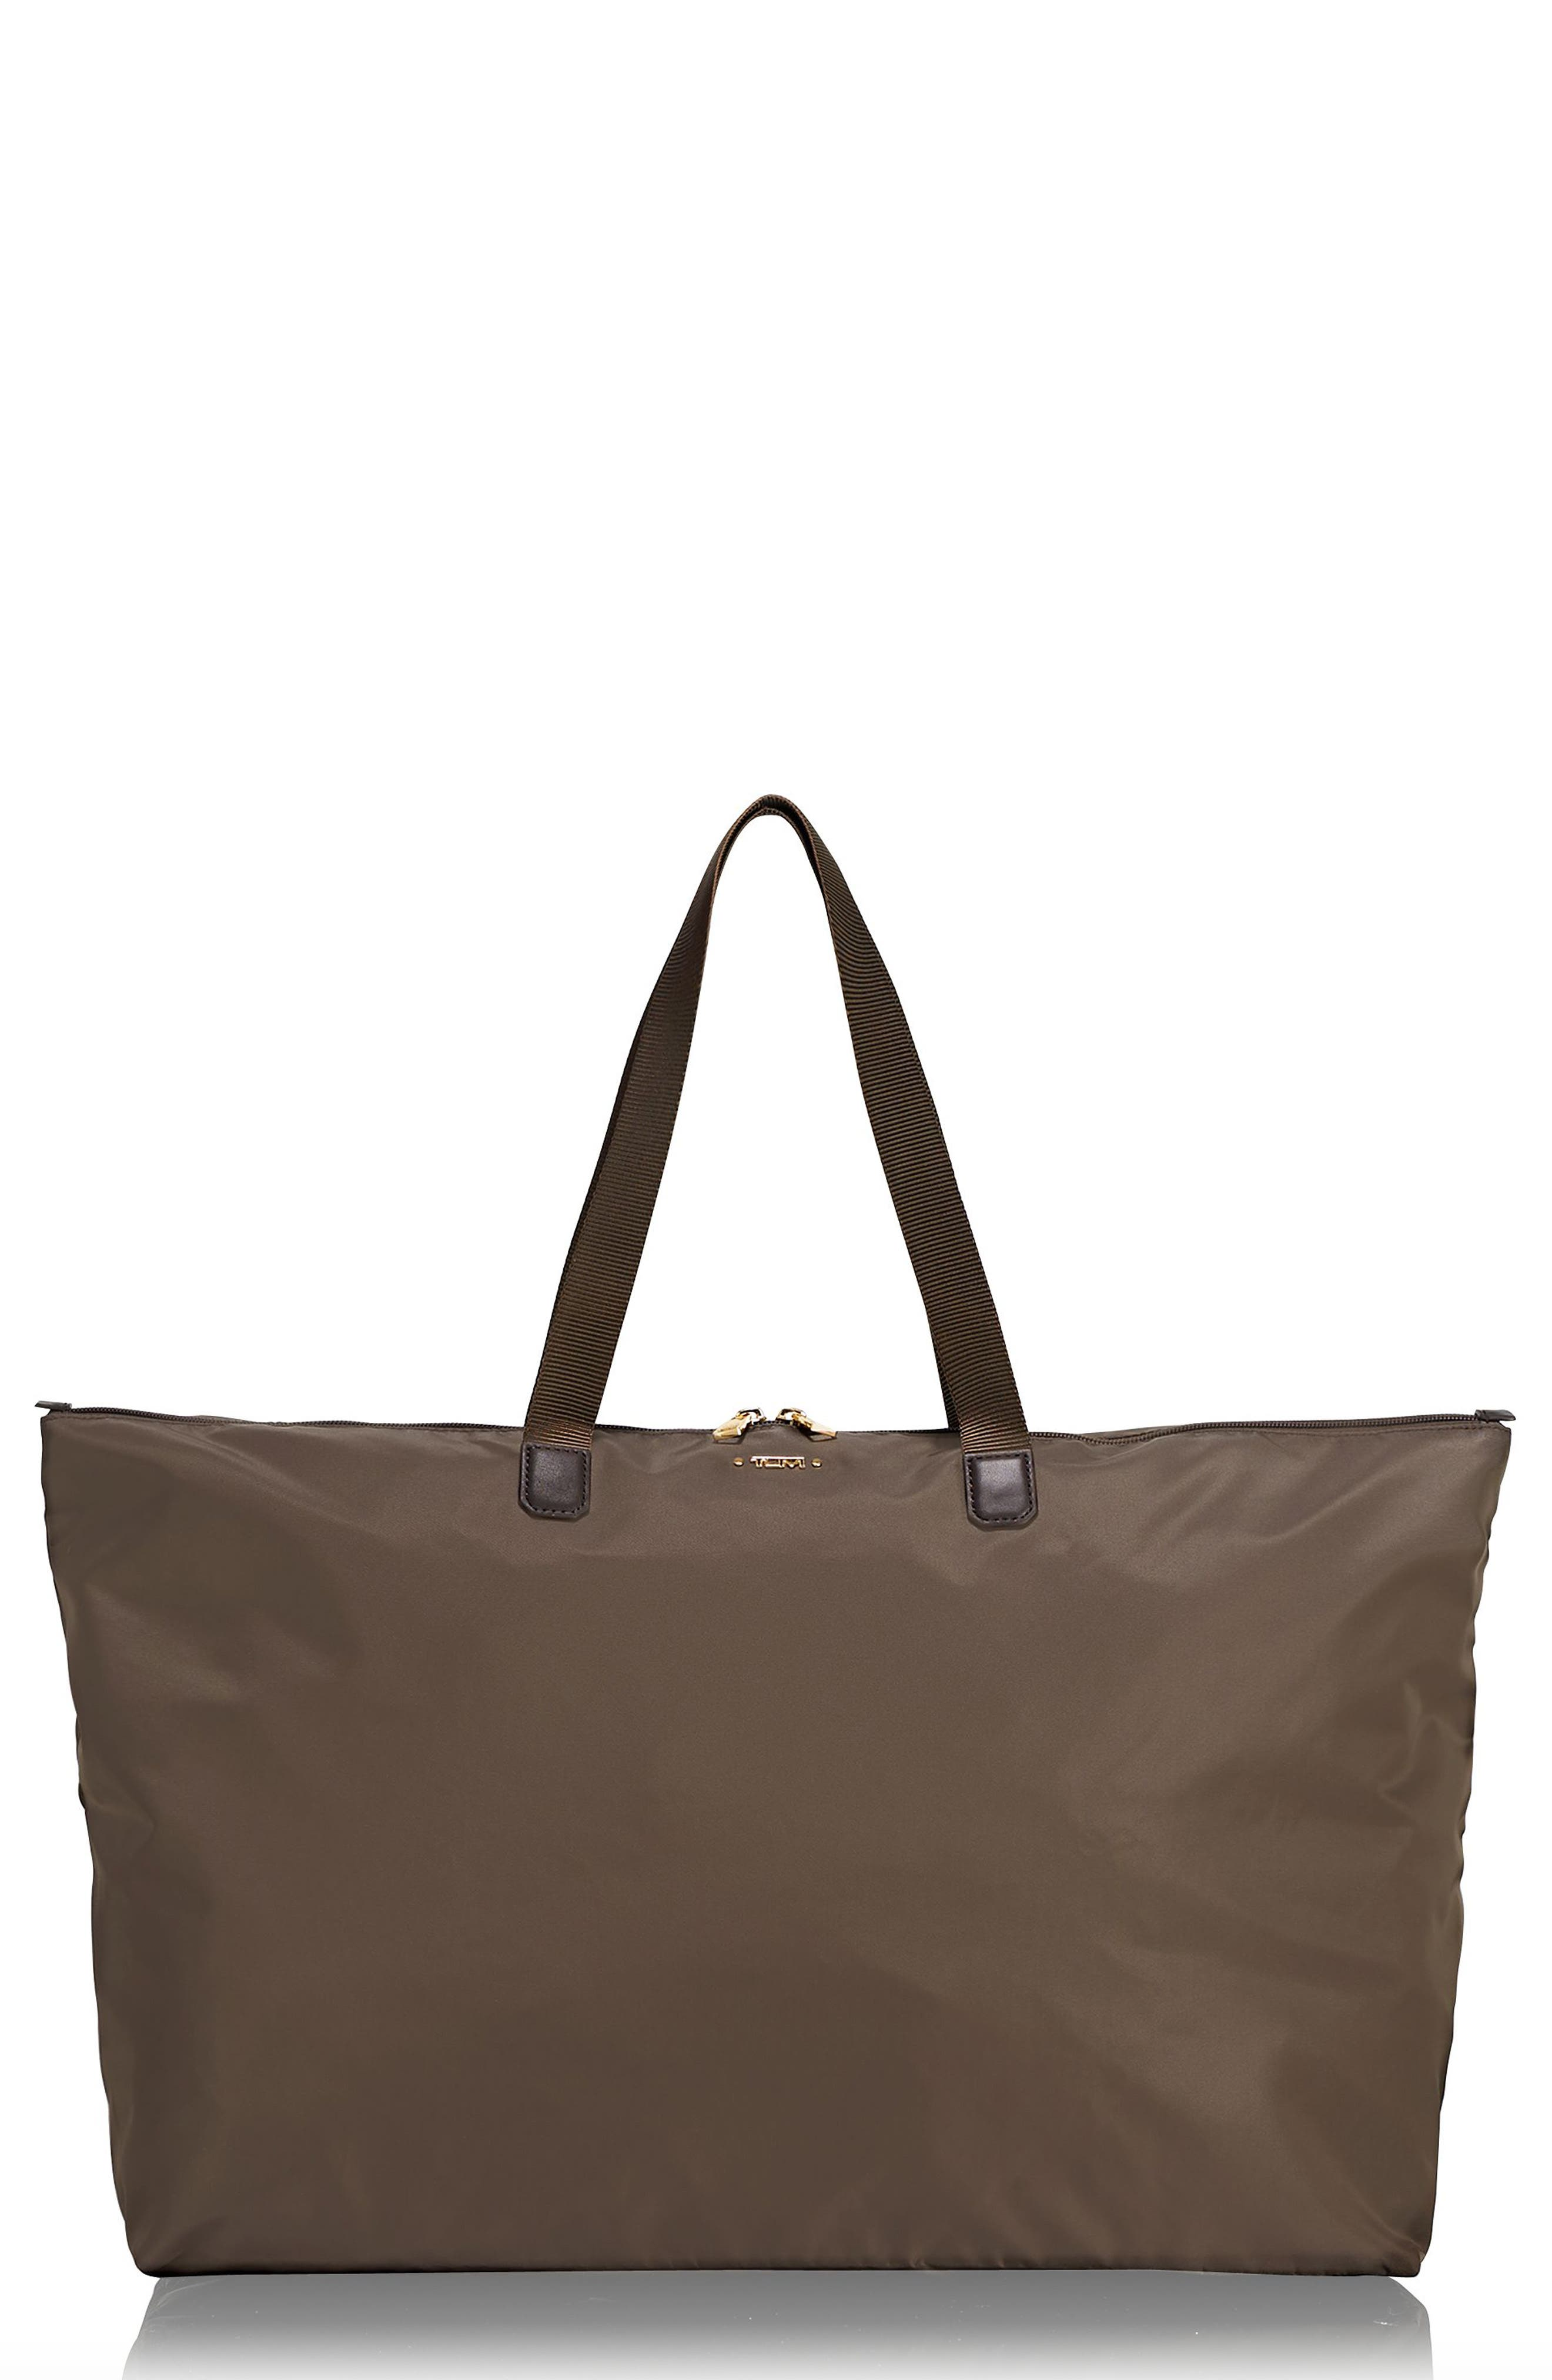 TUMI Voyageur Just In Case Packable Nylon Tote - Brown in Mink